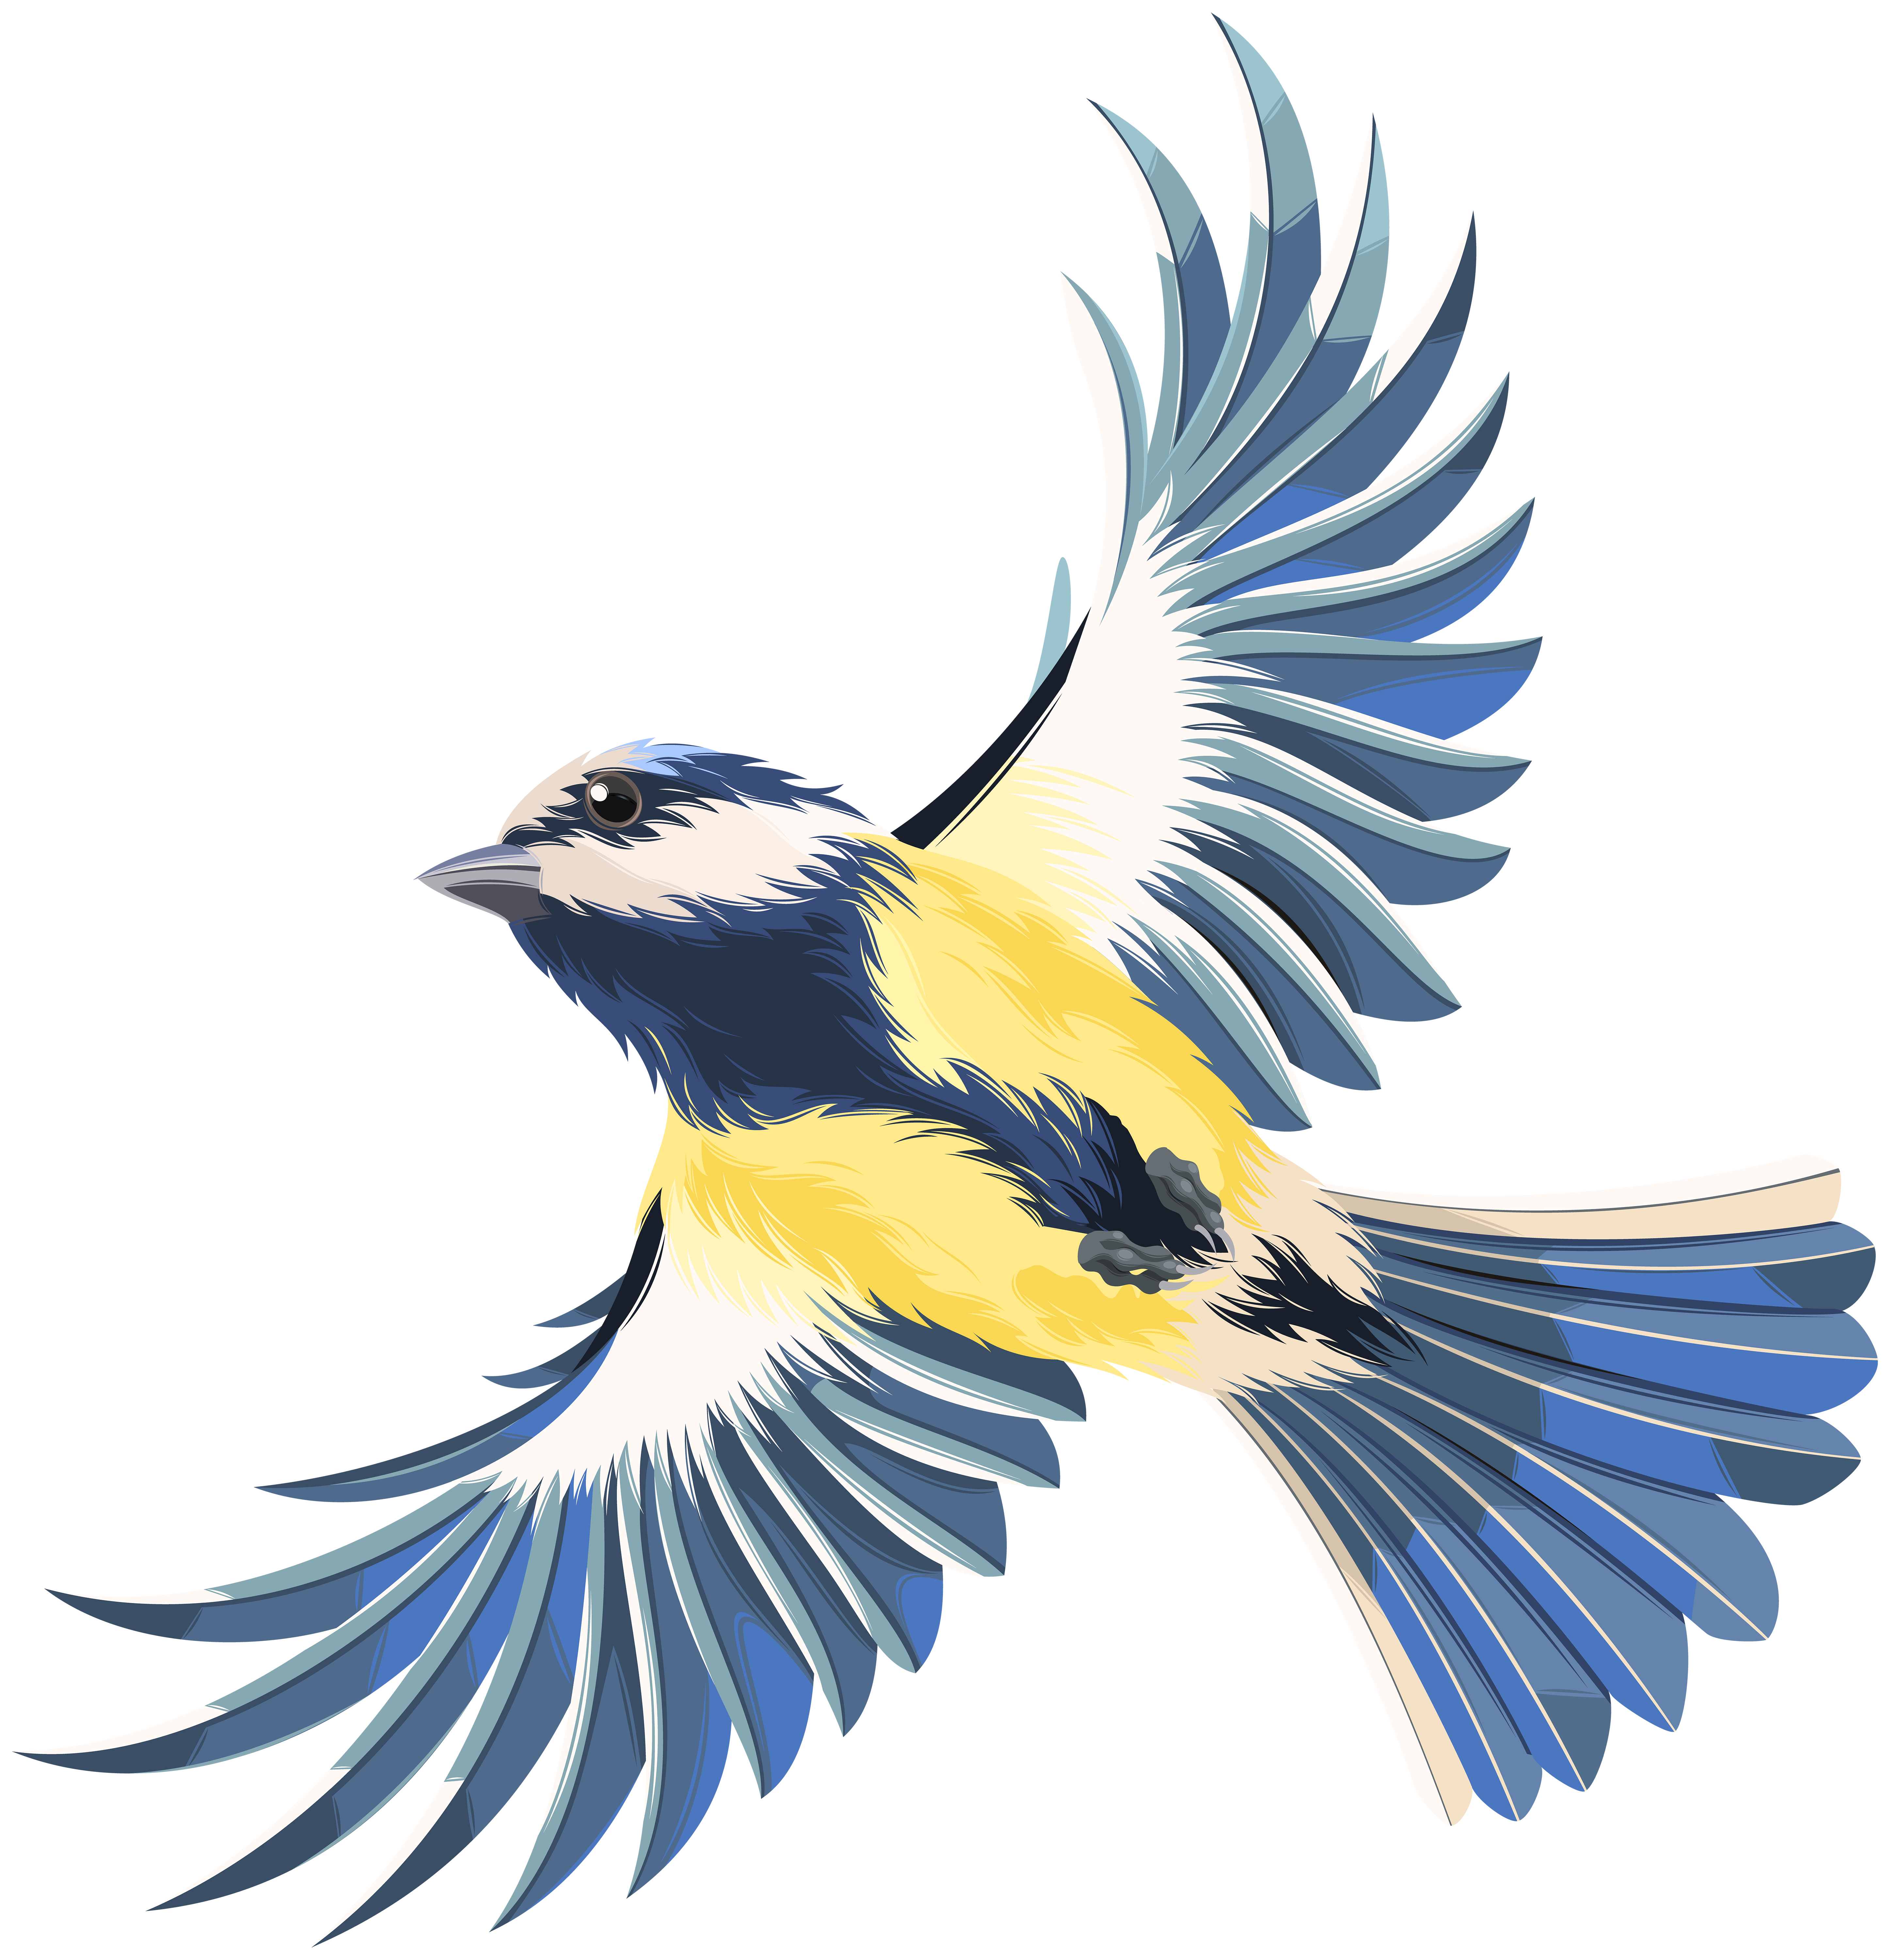 Flying Bird Clipart | Free download on ClipArtMag